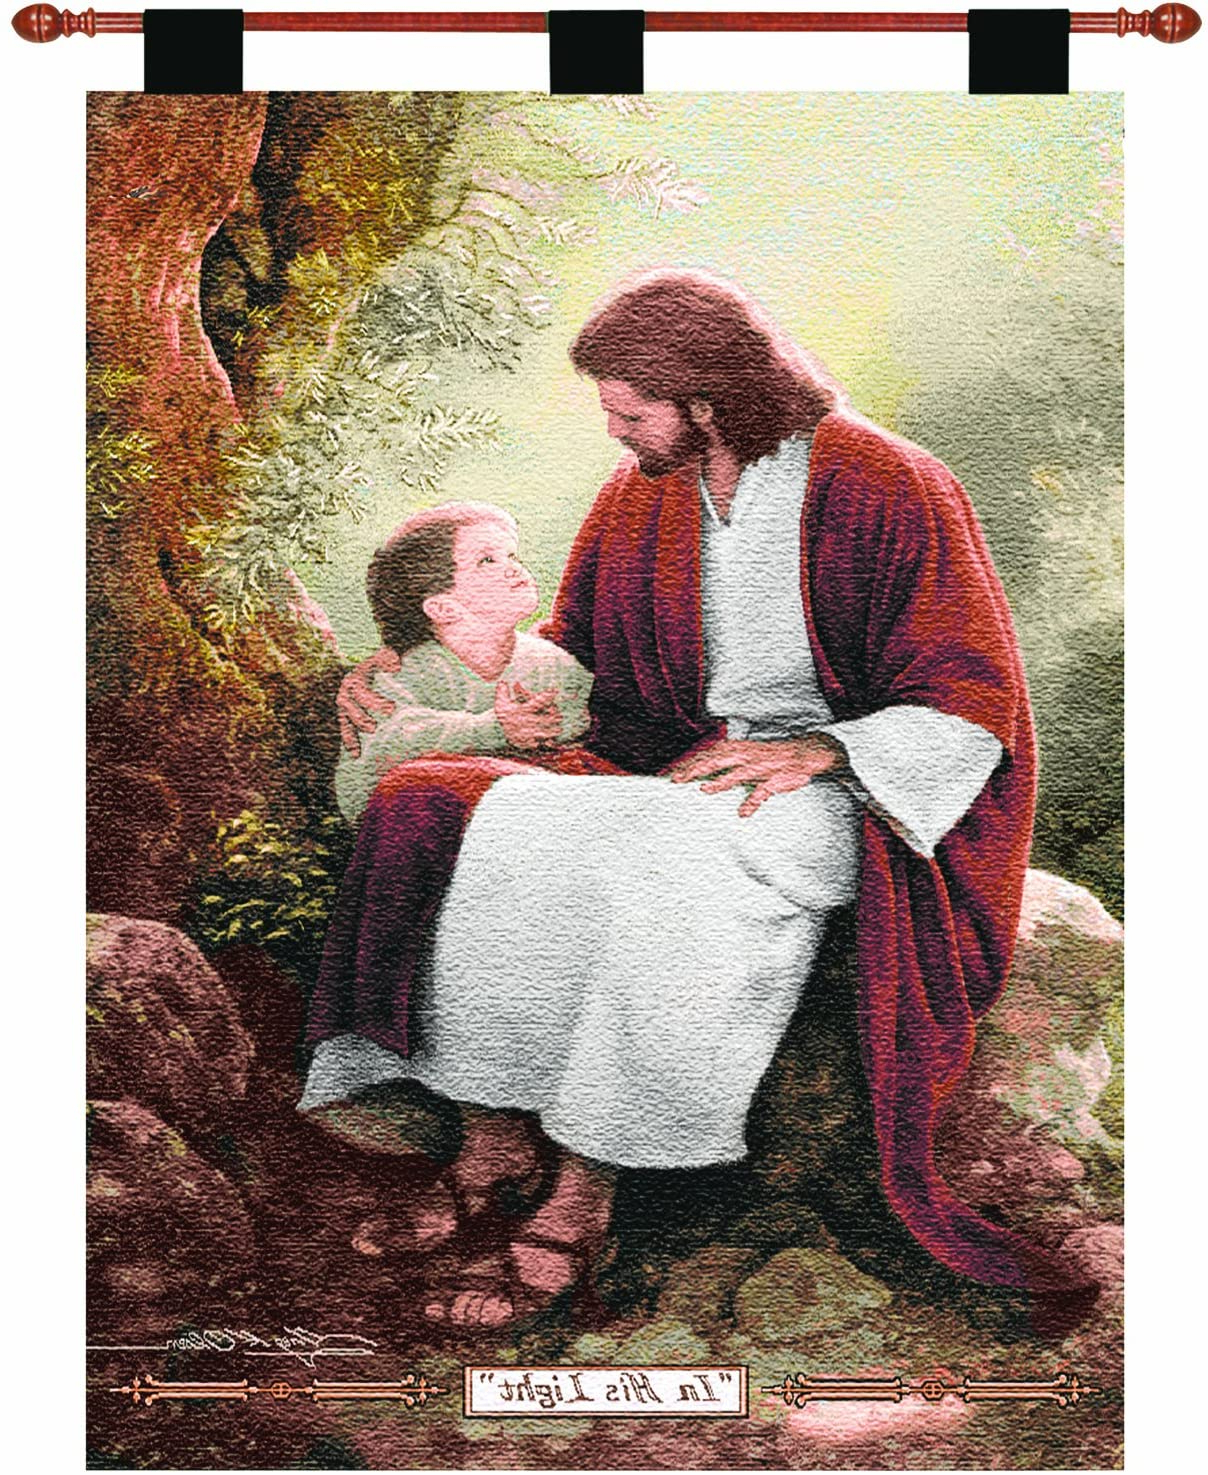 "Trendy Manual Inspirational Collection 26 X 36 Inch Christian Hanging Multicolor Woven Wall Art Tapestry Décor With Finial Rod, ""in His Light""greg Olsen, With Regard To Blended Fabric Freedom Verse Tapestries And Wall Hangings (View 10 of 20)"